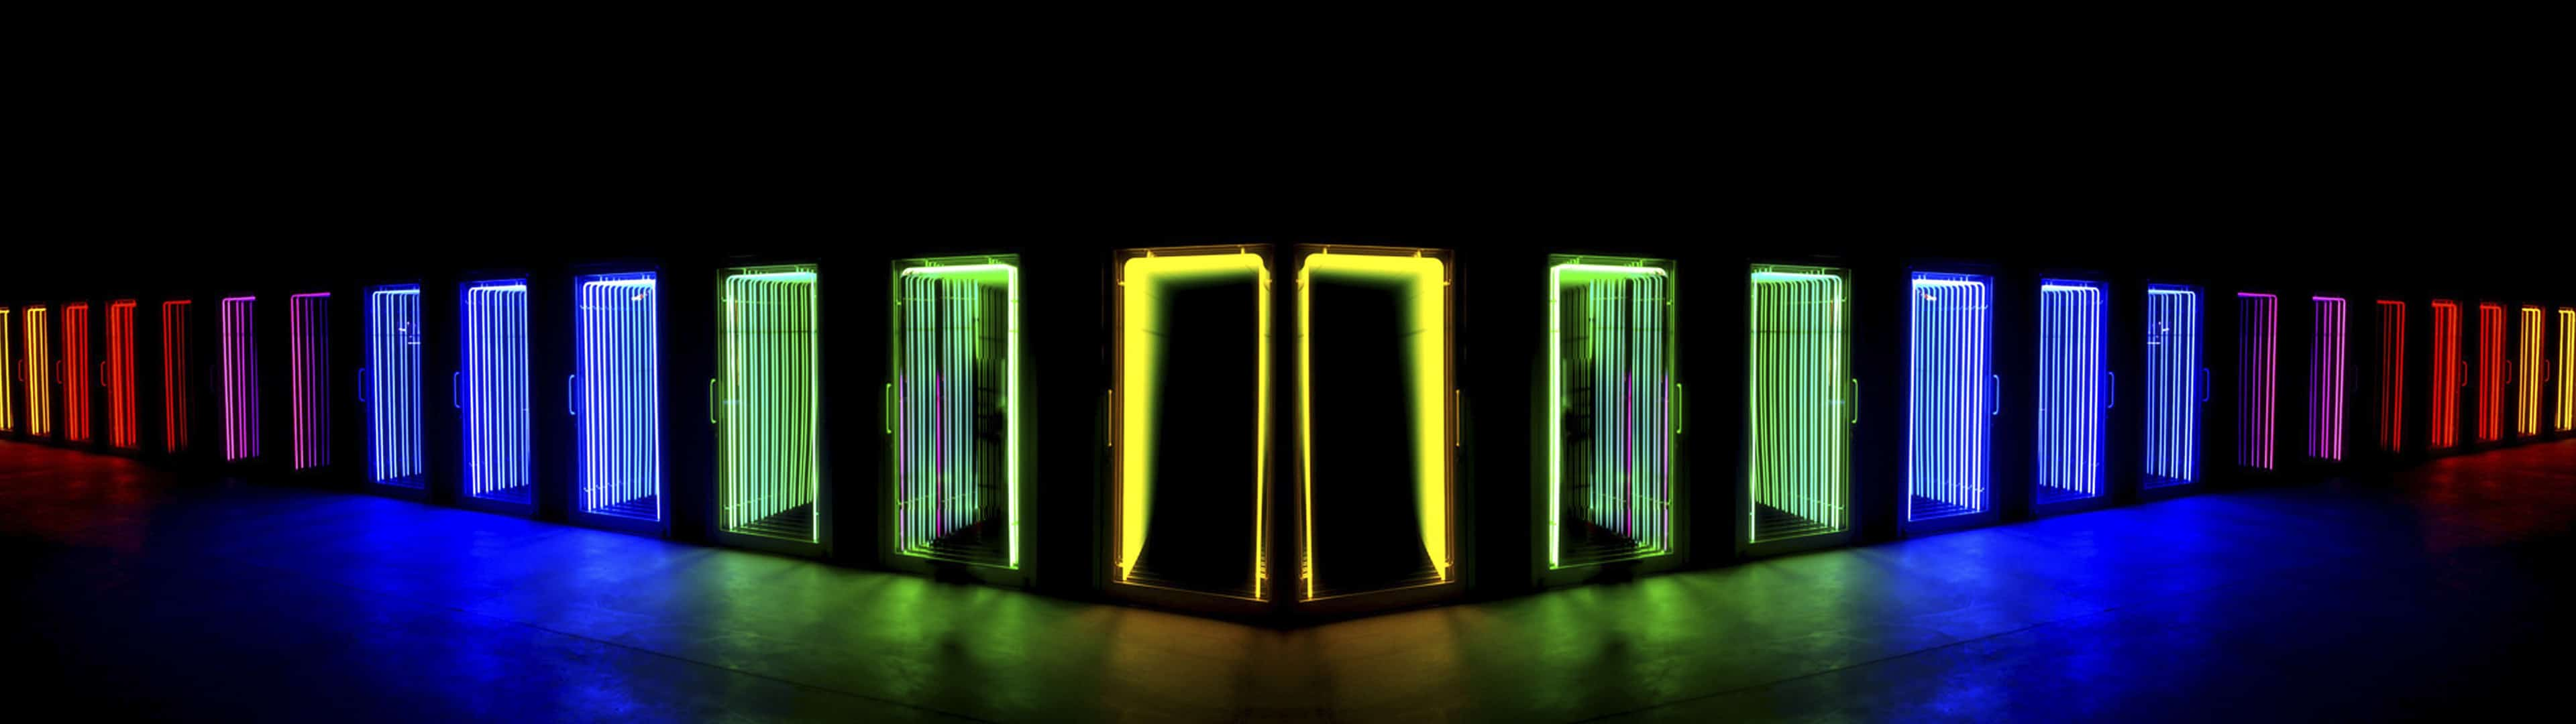 neon light doors dual monitor wallpaper